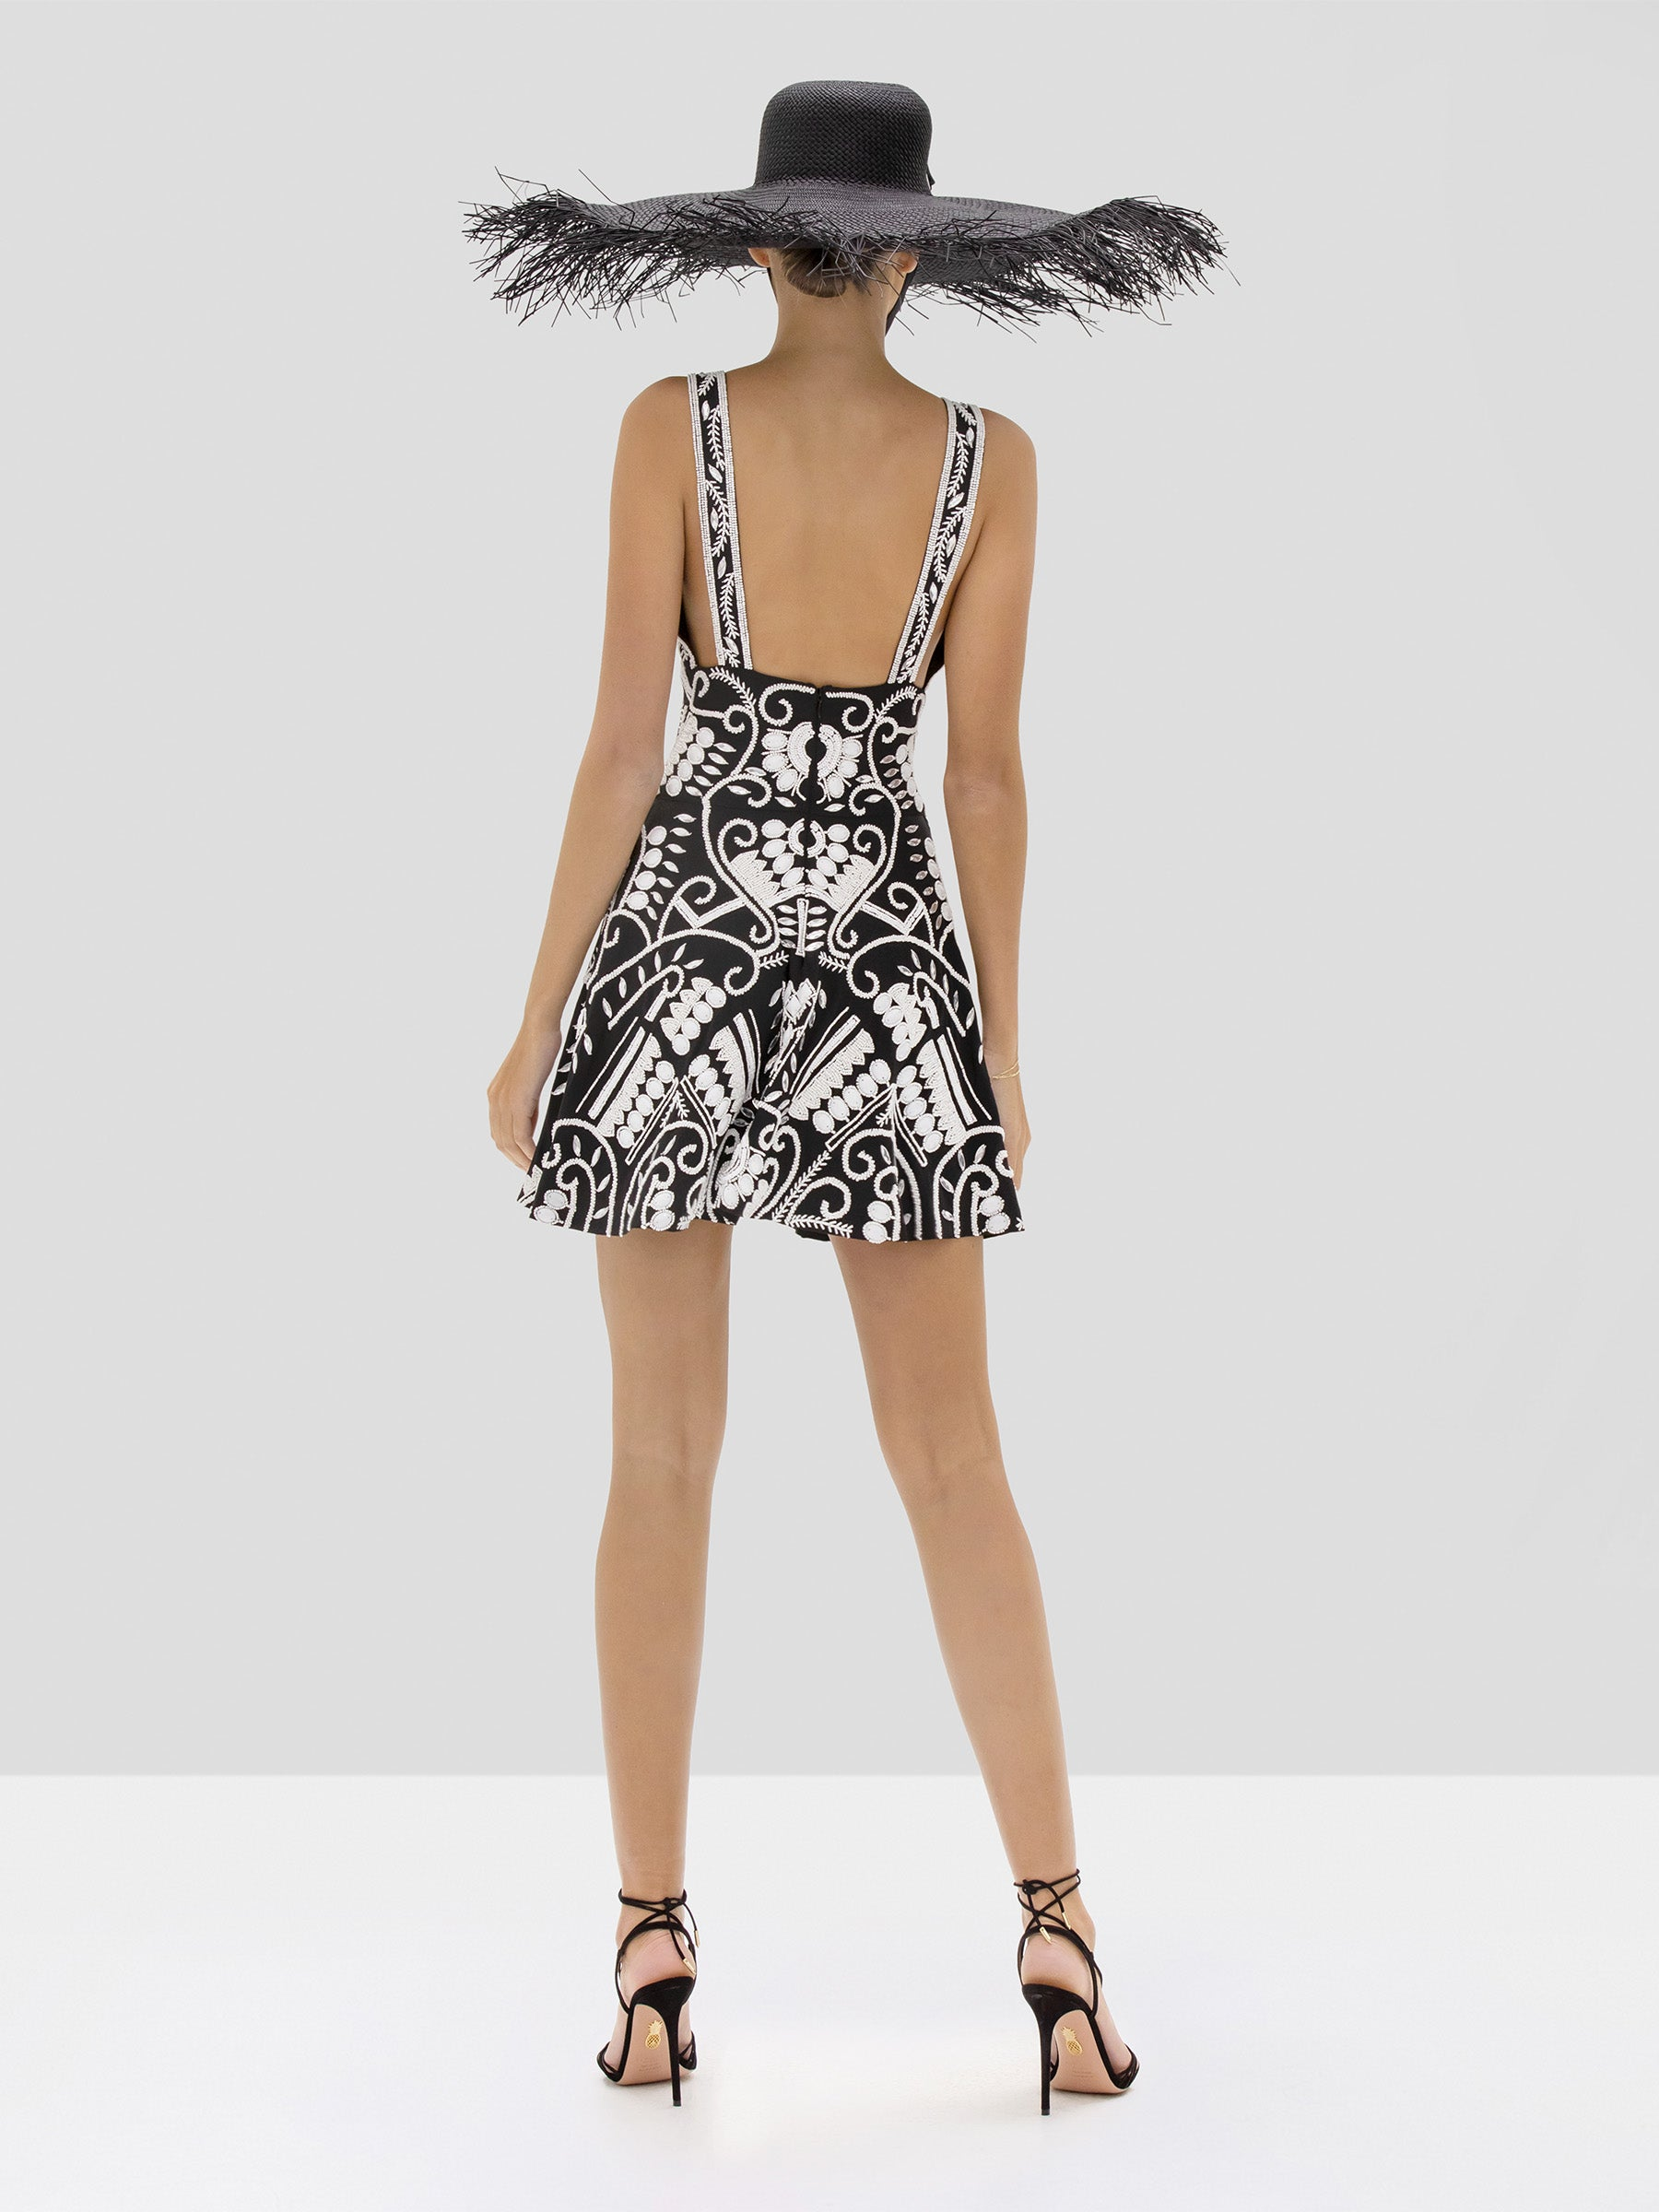 Alexis Jerza Dress in Black and White Embroidery from the Spring Summer 2020 Collection - Rear View